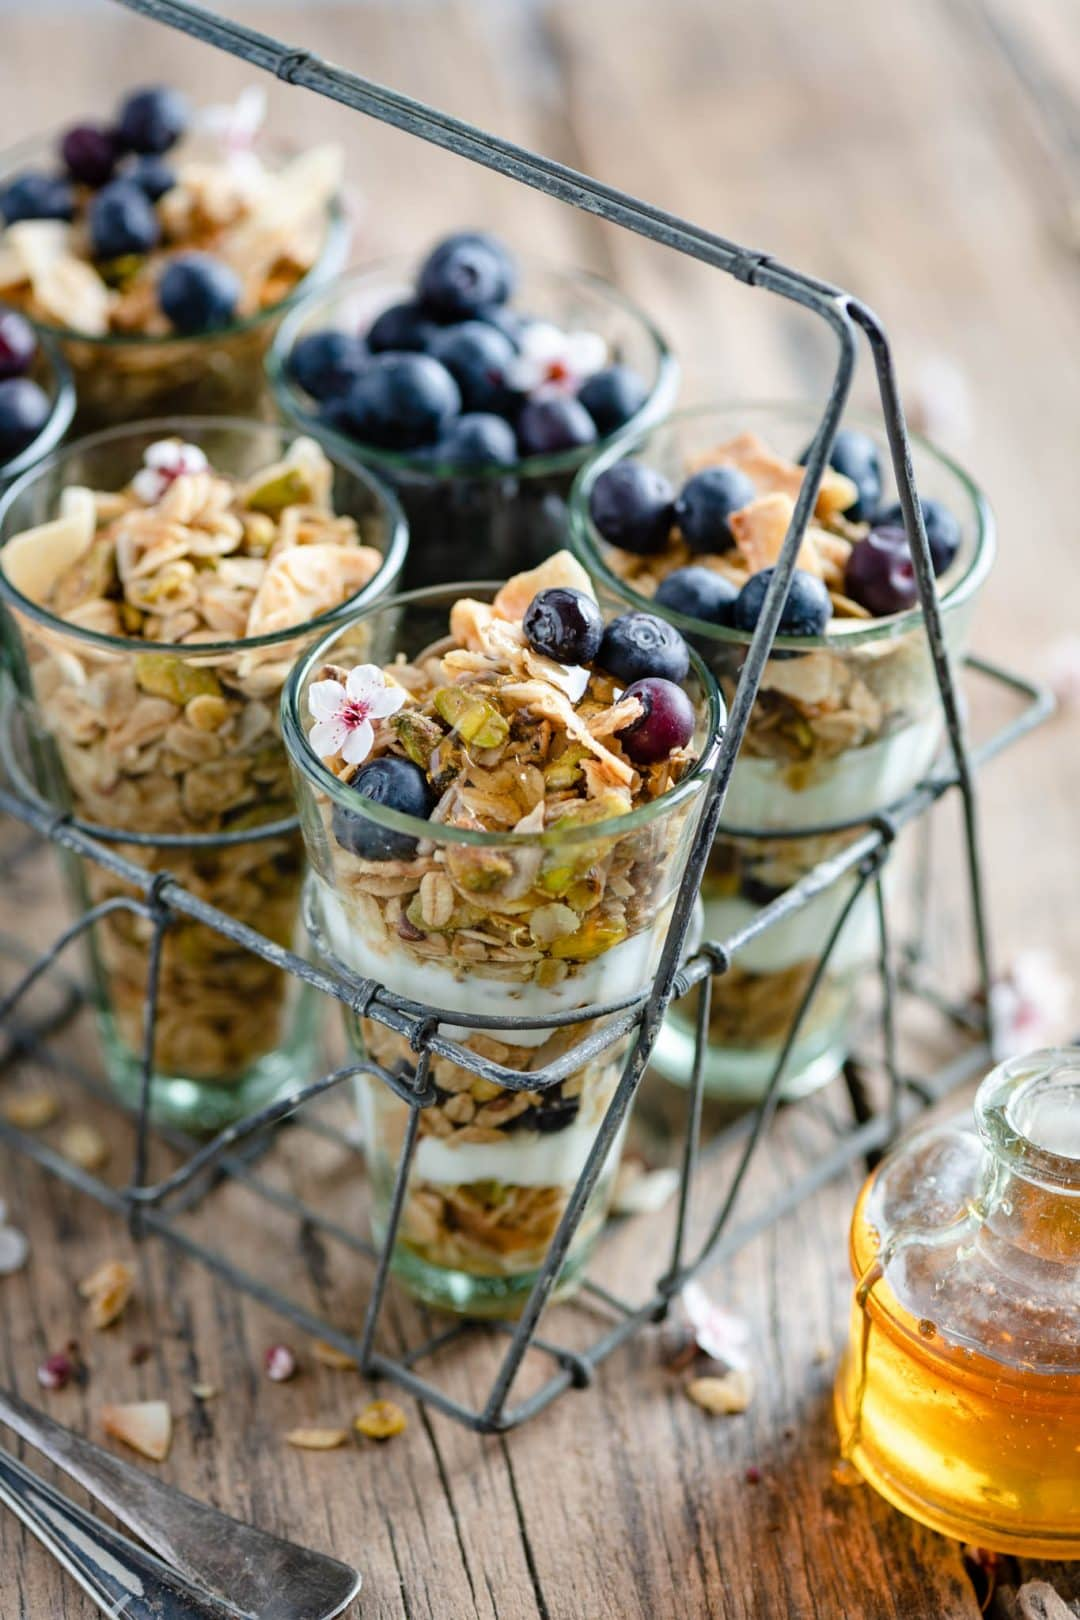 Coconut Granola Parfaits with pistachio and blueberries.